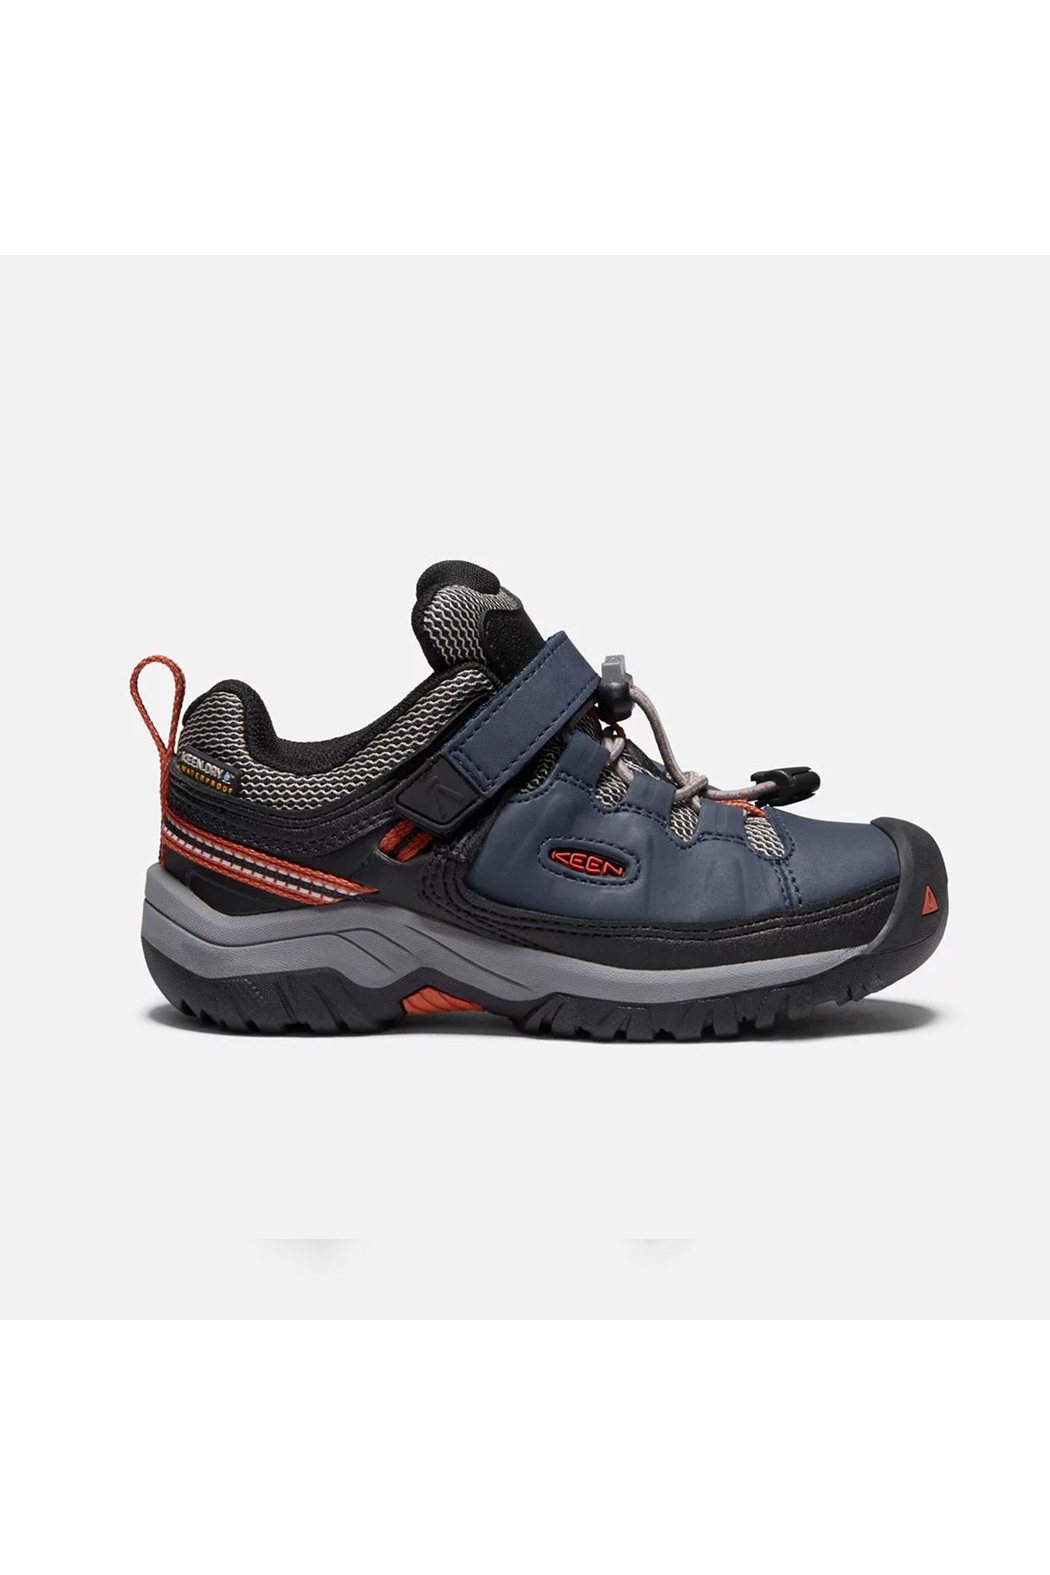 Keen Targhee Low Waterproof Child - Main Image